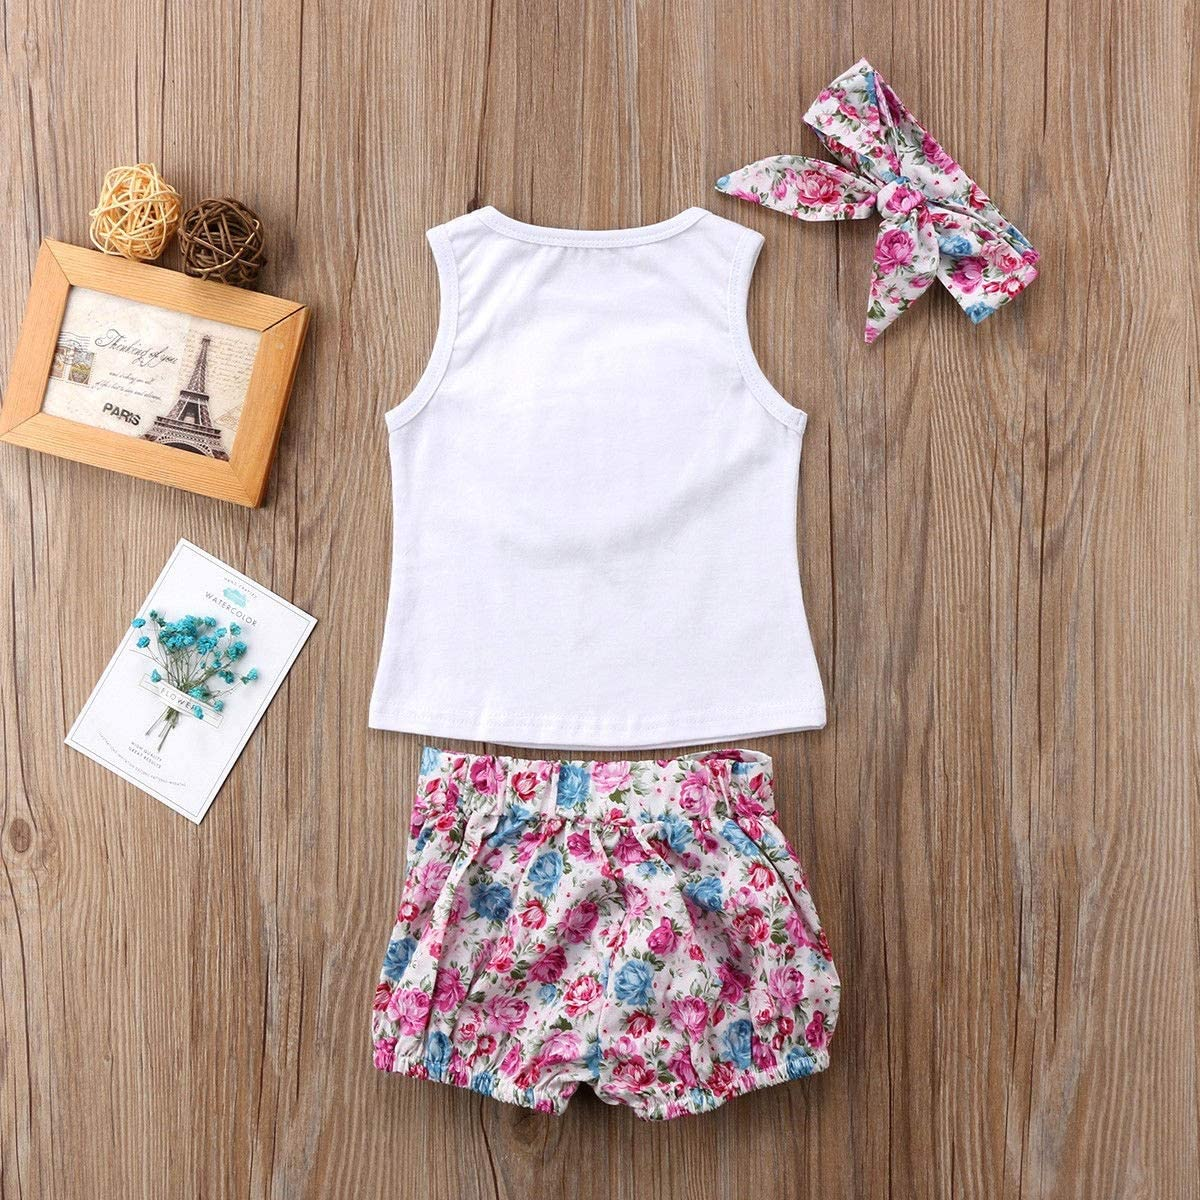 Haokaini Baby Girls Big Little Sisiter Family Matching Set Vest Headband Floral Shorts//Suspender Skirt Outfits